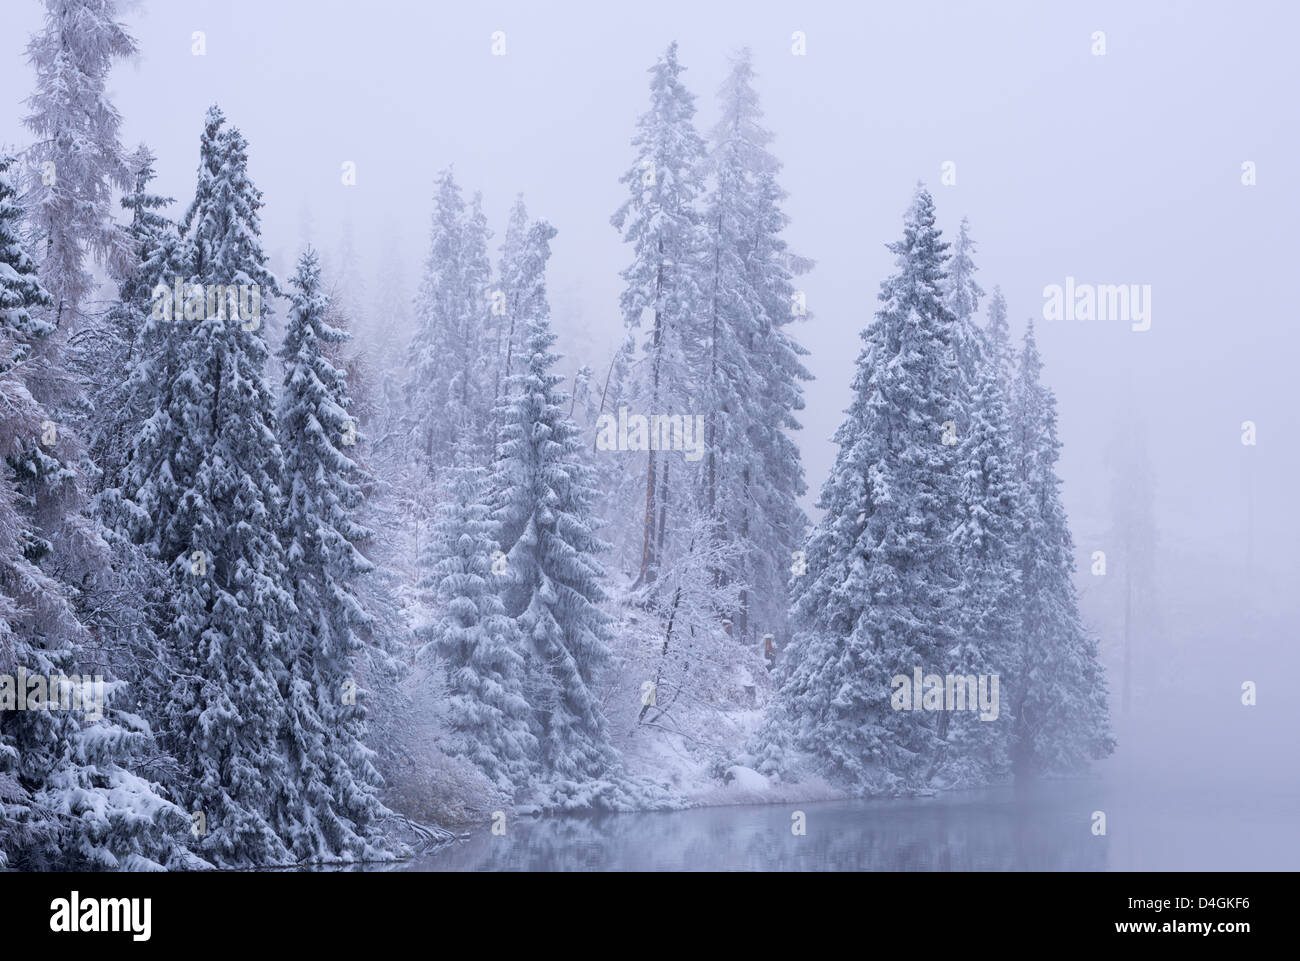 Snow covered pine trees in winter, High Tatras, Slovakia, Europe. - Stock Image